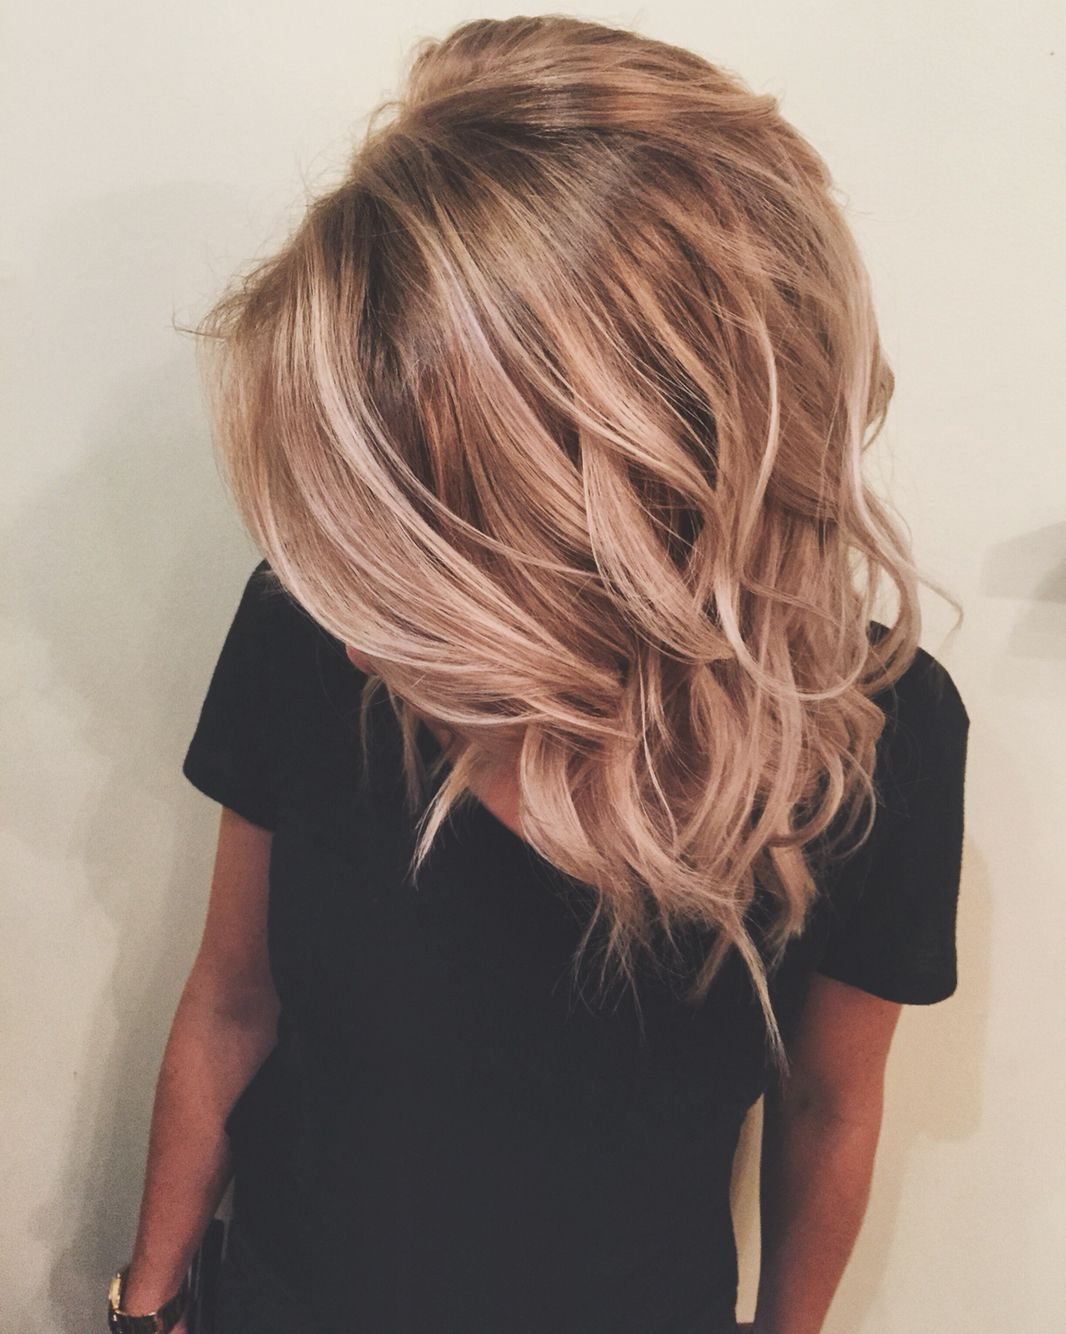 Pin by brianda reyes on hair pinterest blondes hair goals and